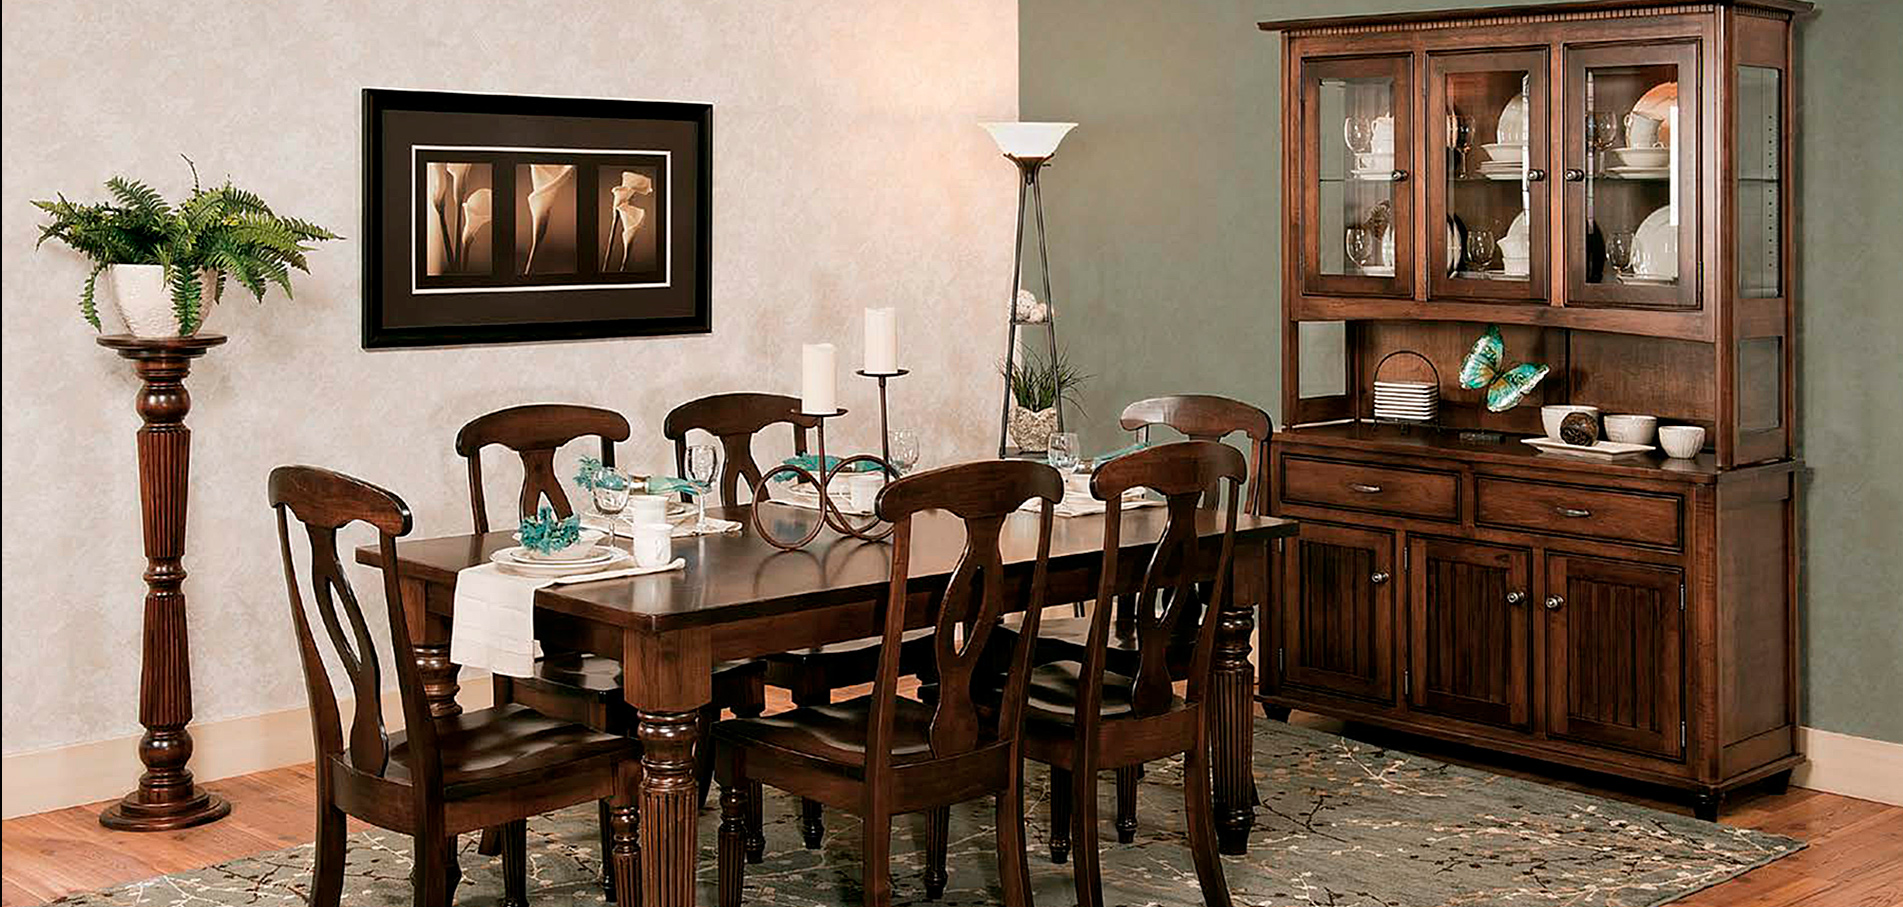 2017-west-point-woodworking-berkshire-dining274-copy.jpg